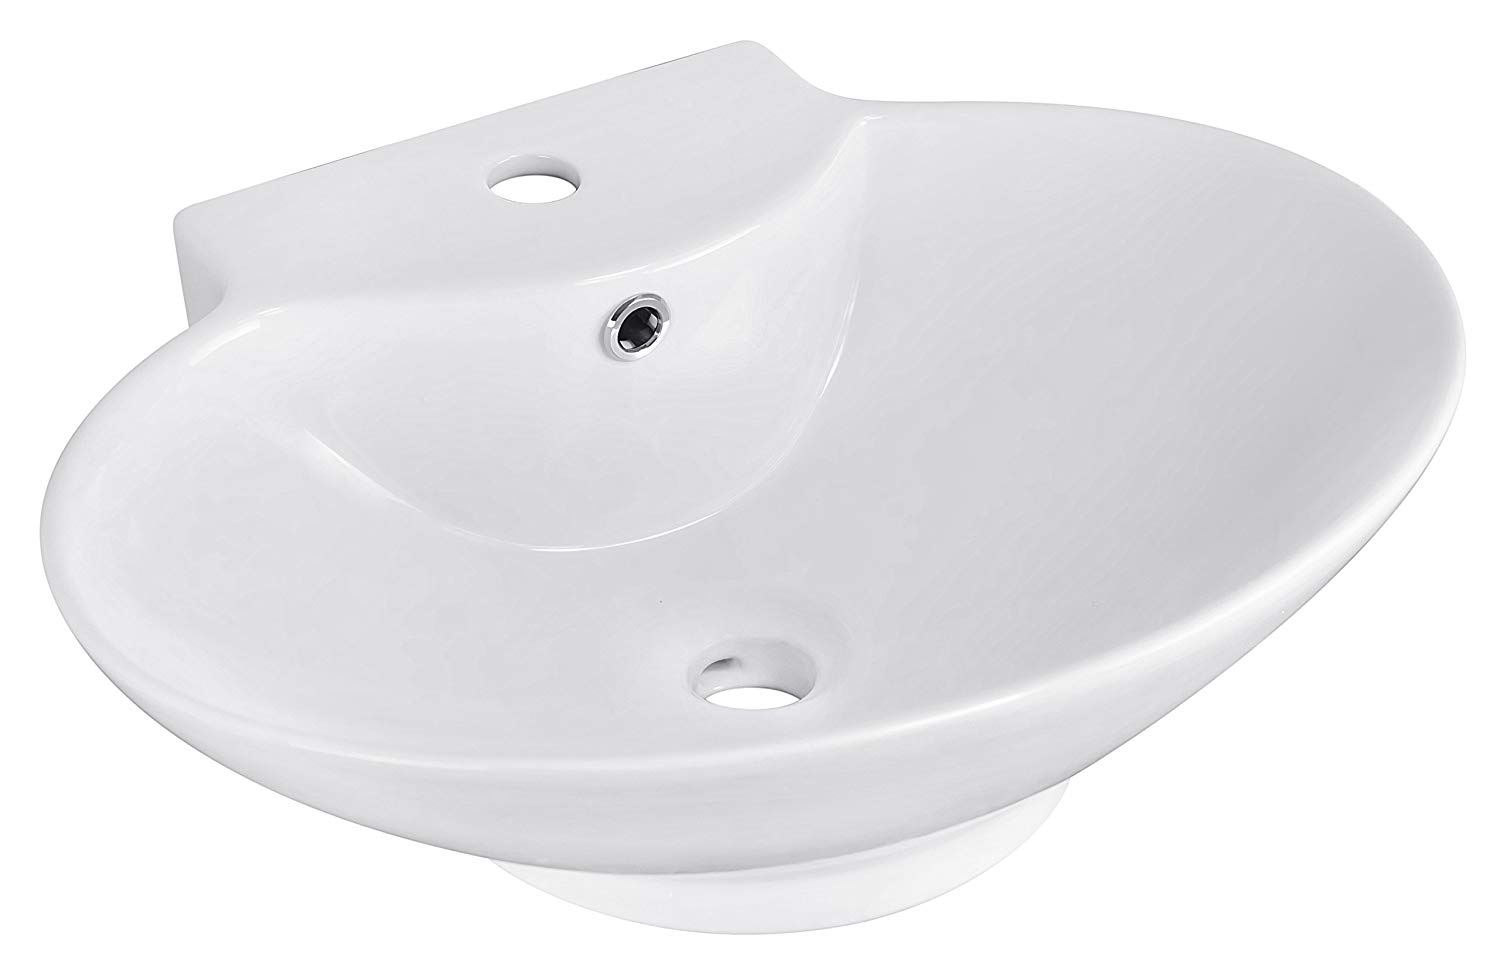 American Imaginations 590 Above Counter Oval White Ceramic Vessel for Single Hole Faucet Installation